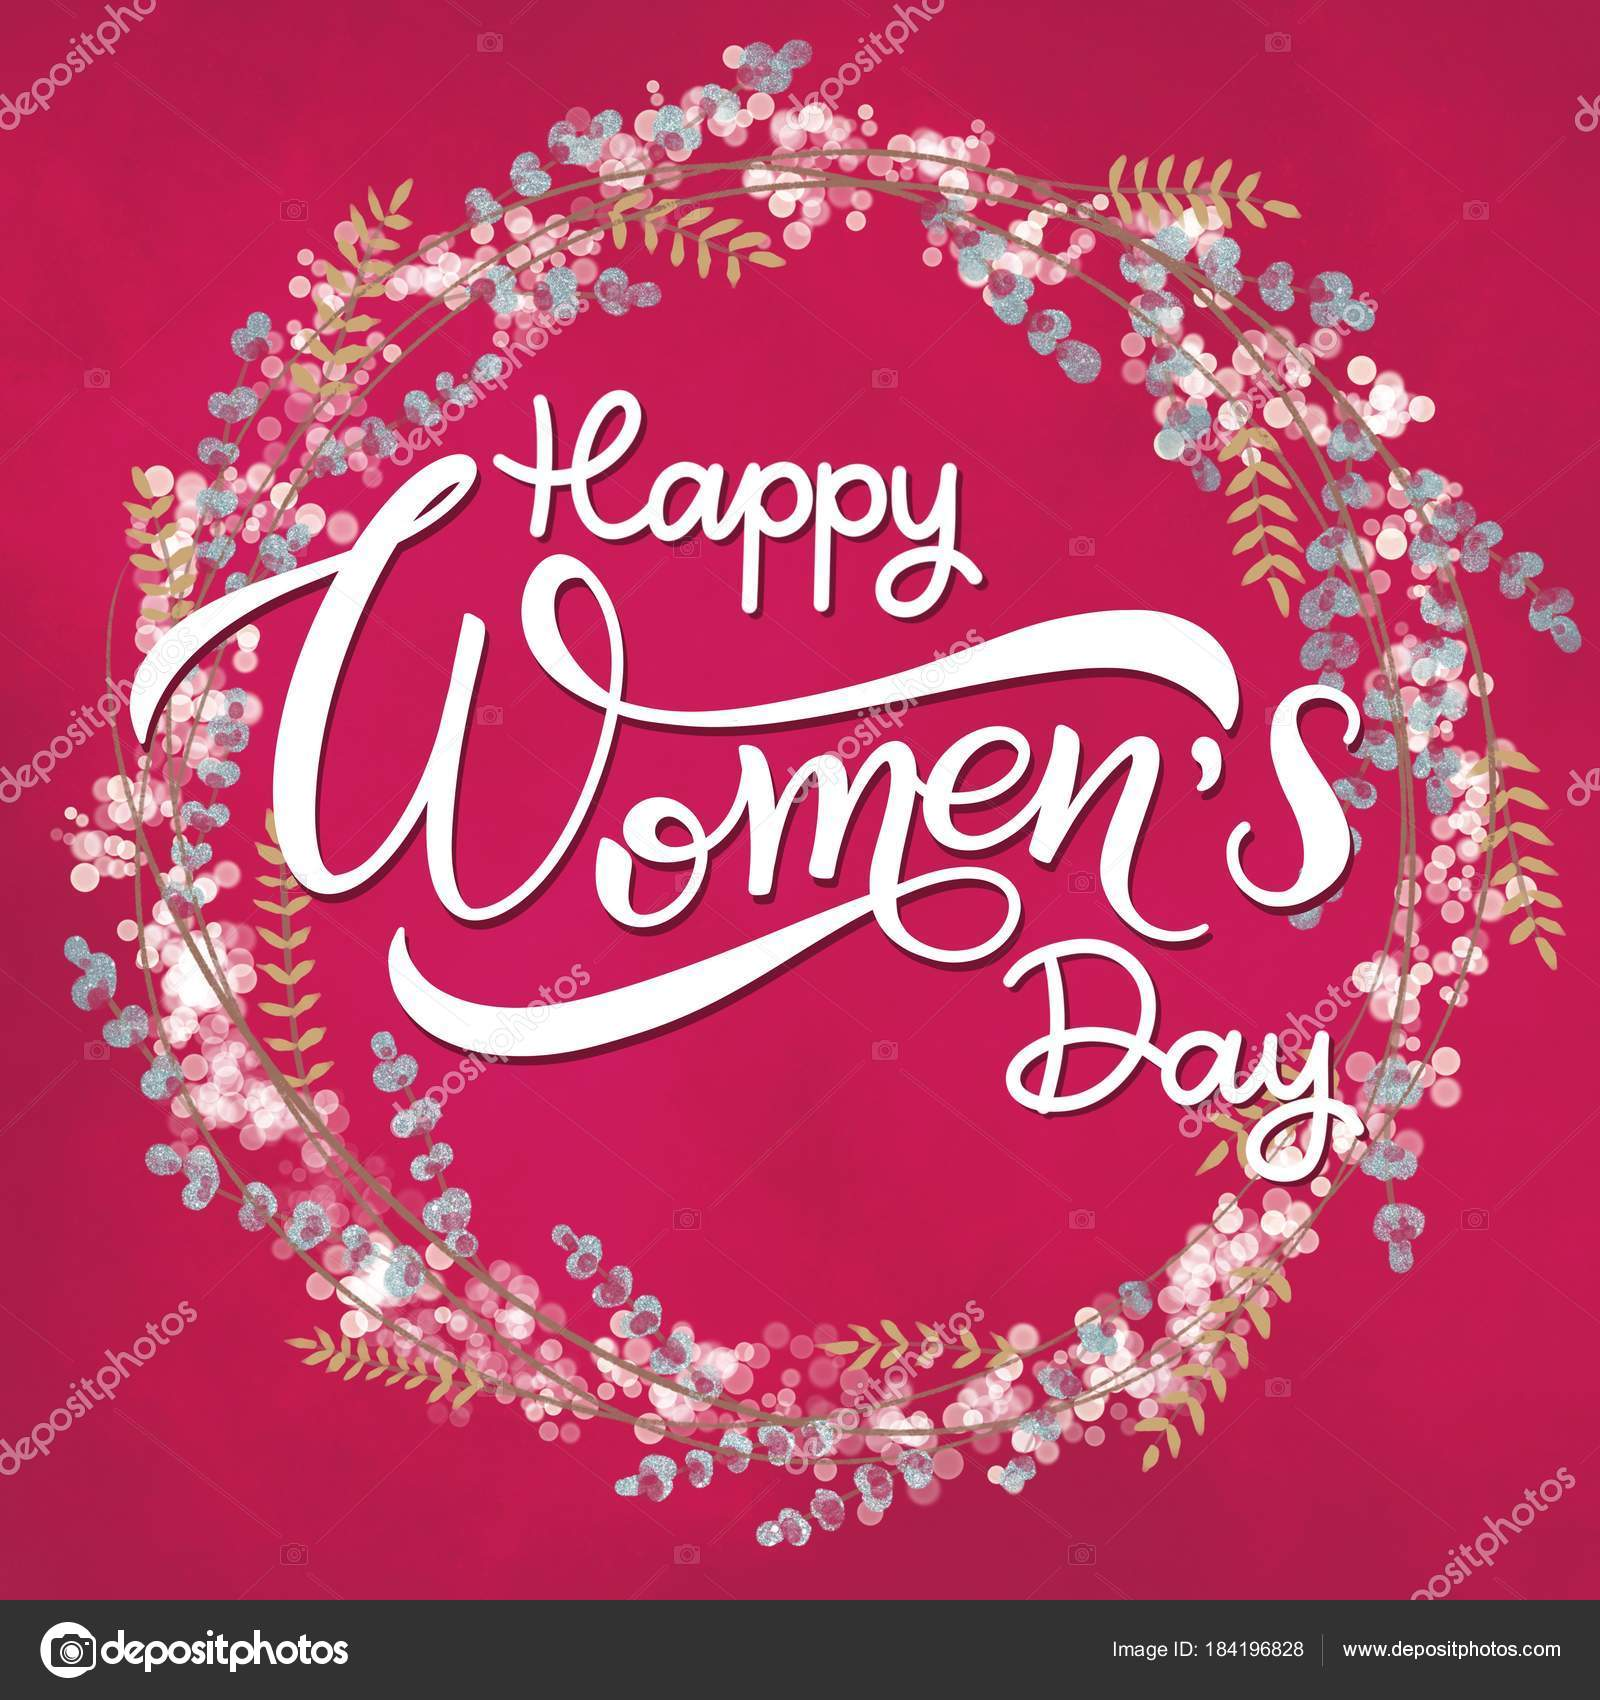 Happy Womens Day Greeting Cards 8 March Lettering With Flowers